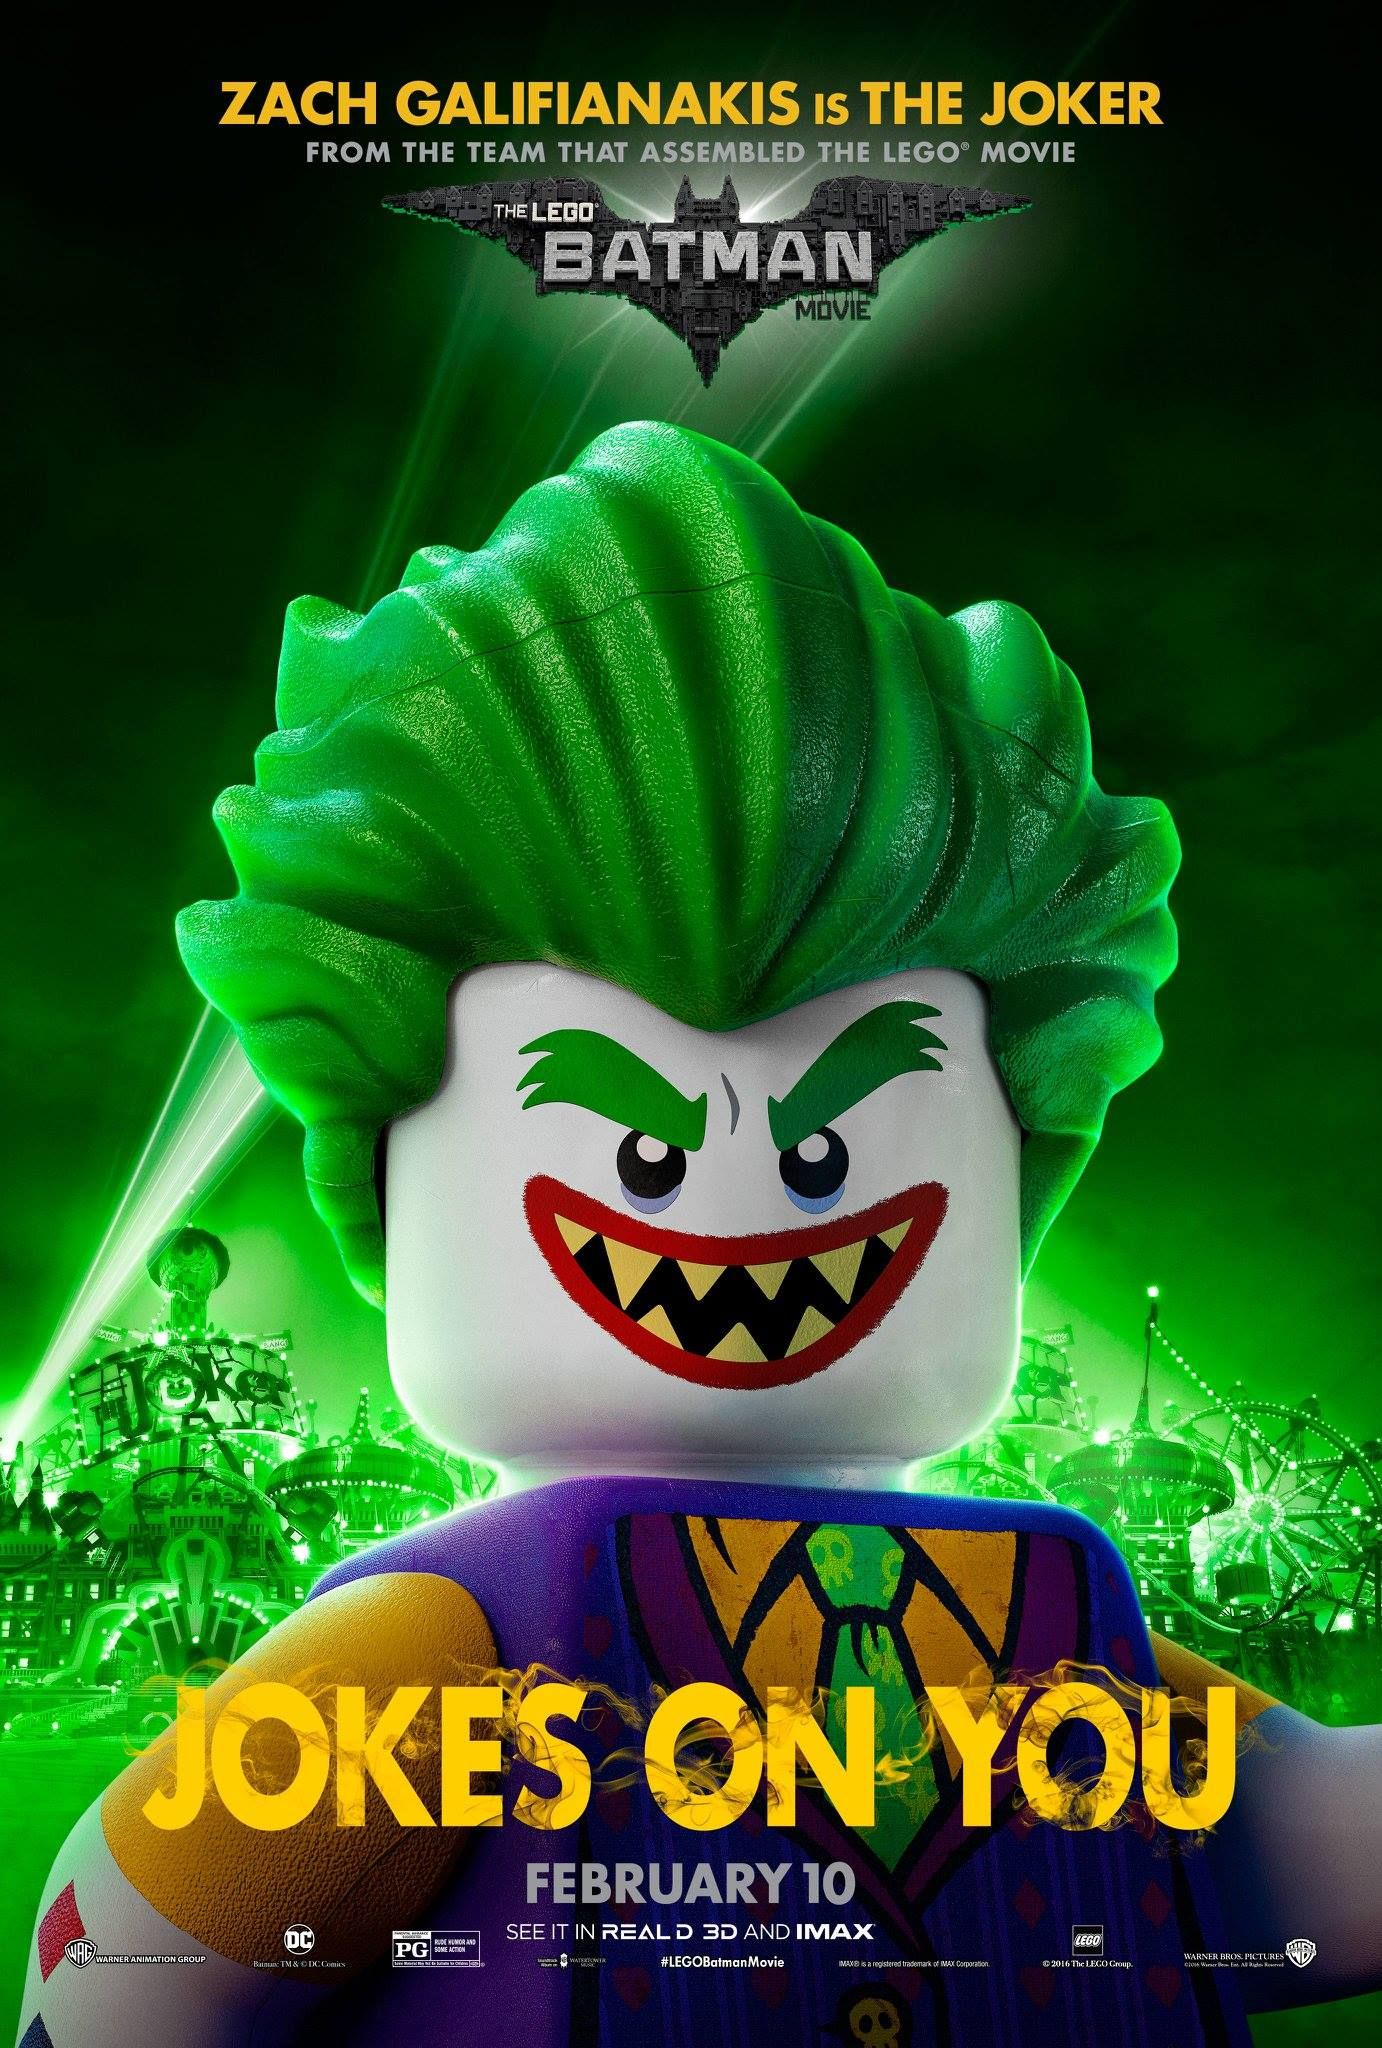 Six New Lego Batman Movie Posters Just Make It Look Better And